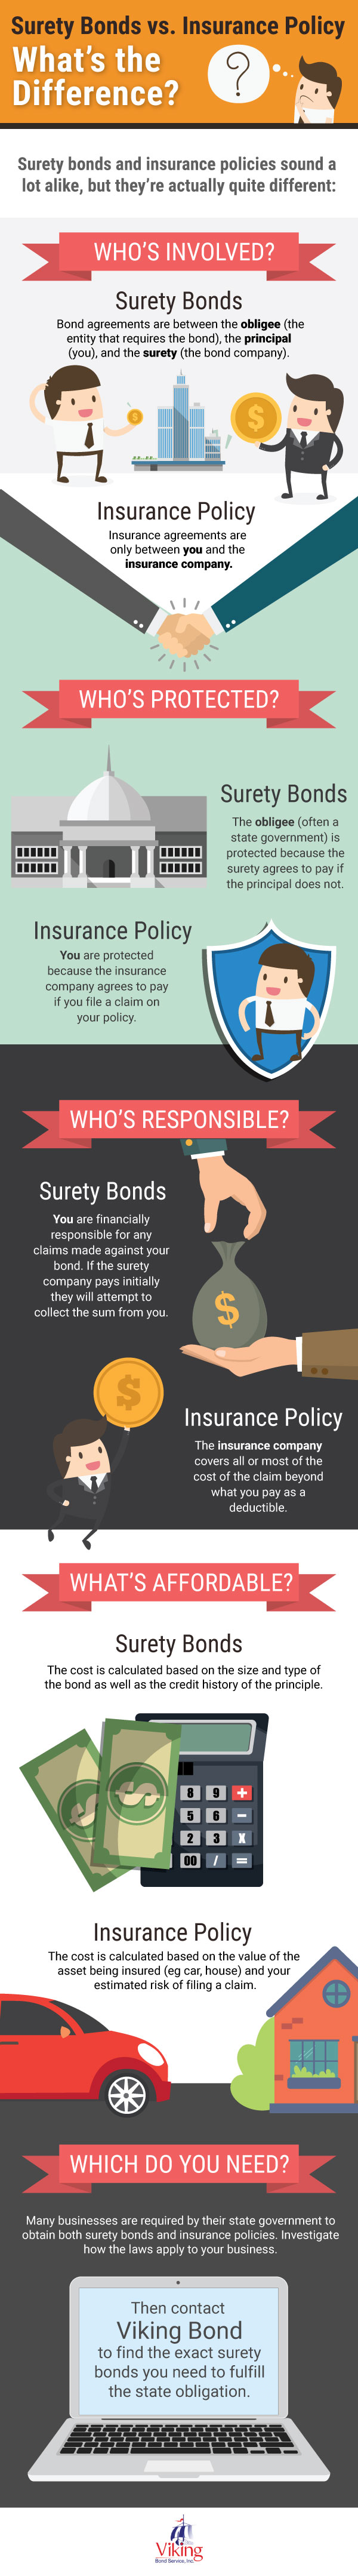 Surety Bonds vs. Insurance Policies - Infographic_v1